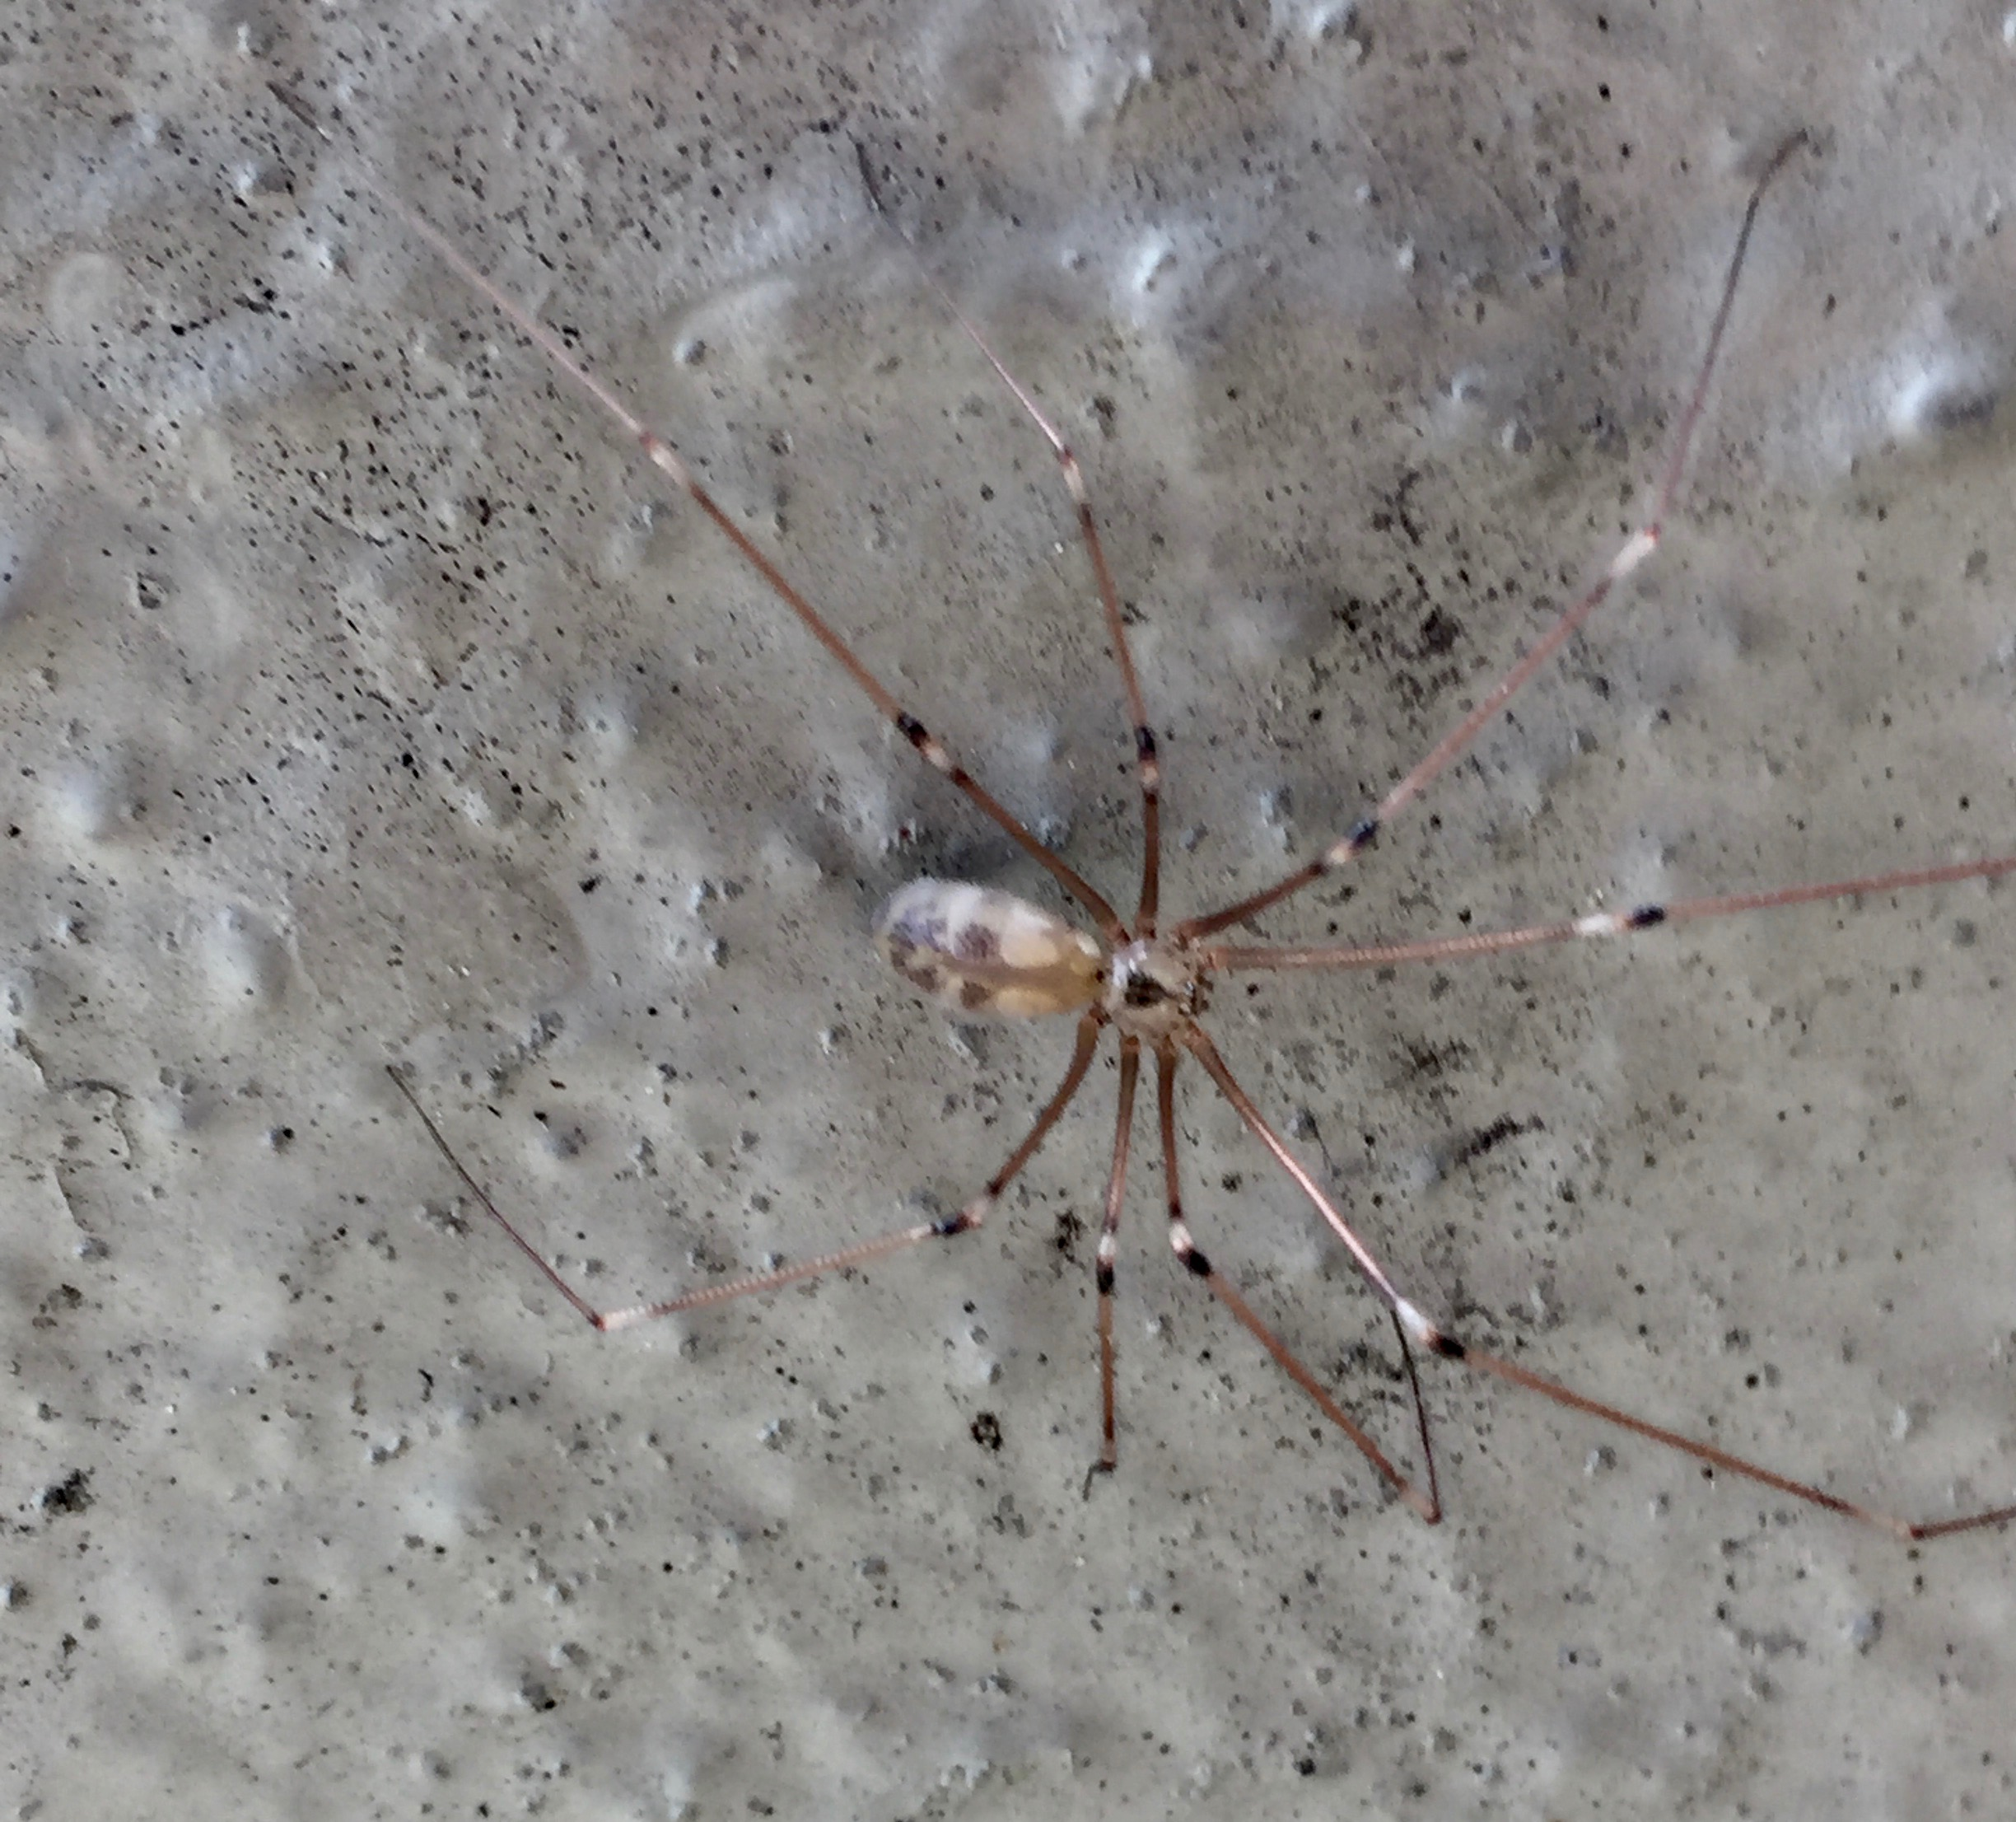 Cellar spider, Pholcus phalangioides